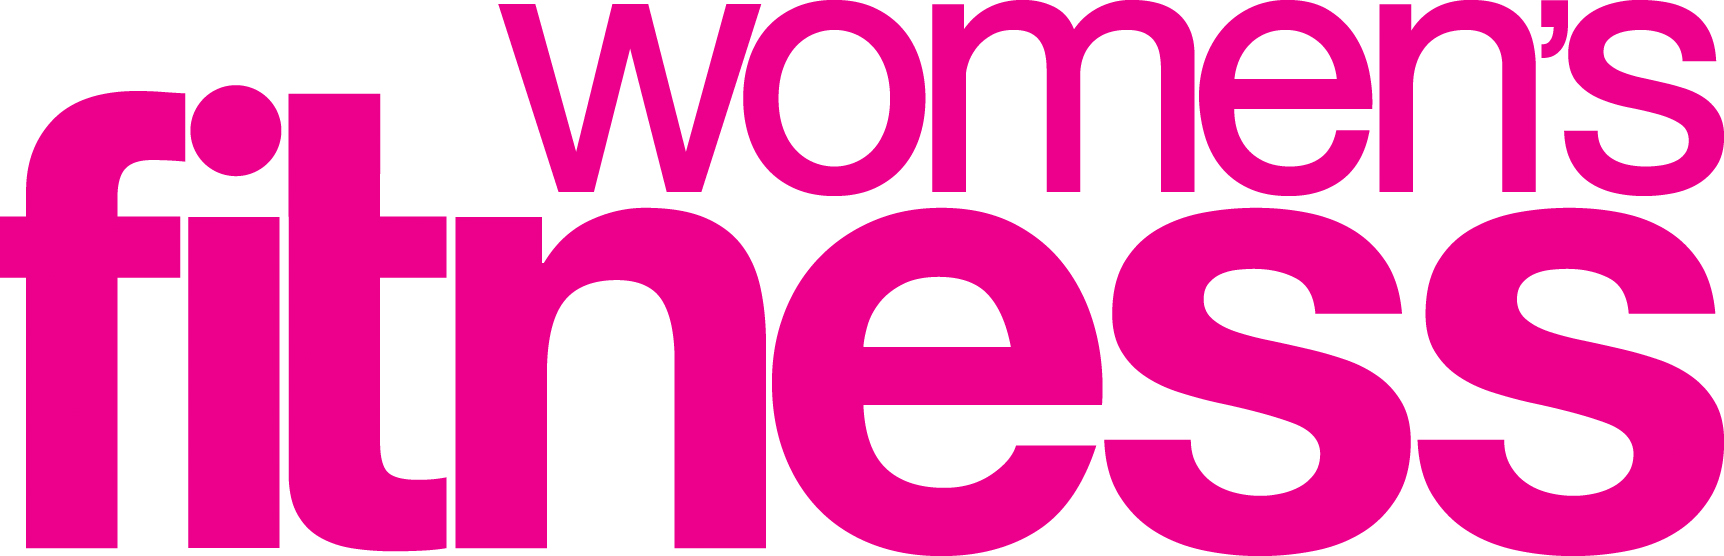 Womens-Fitness-Logo-Pink